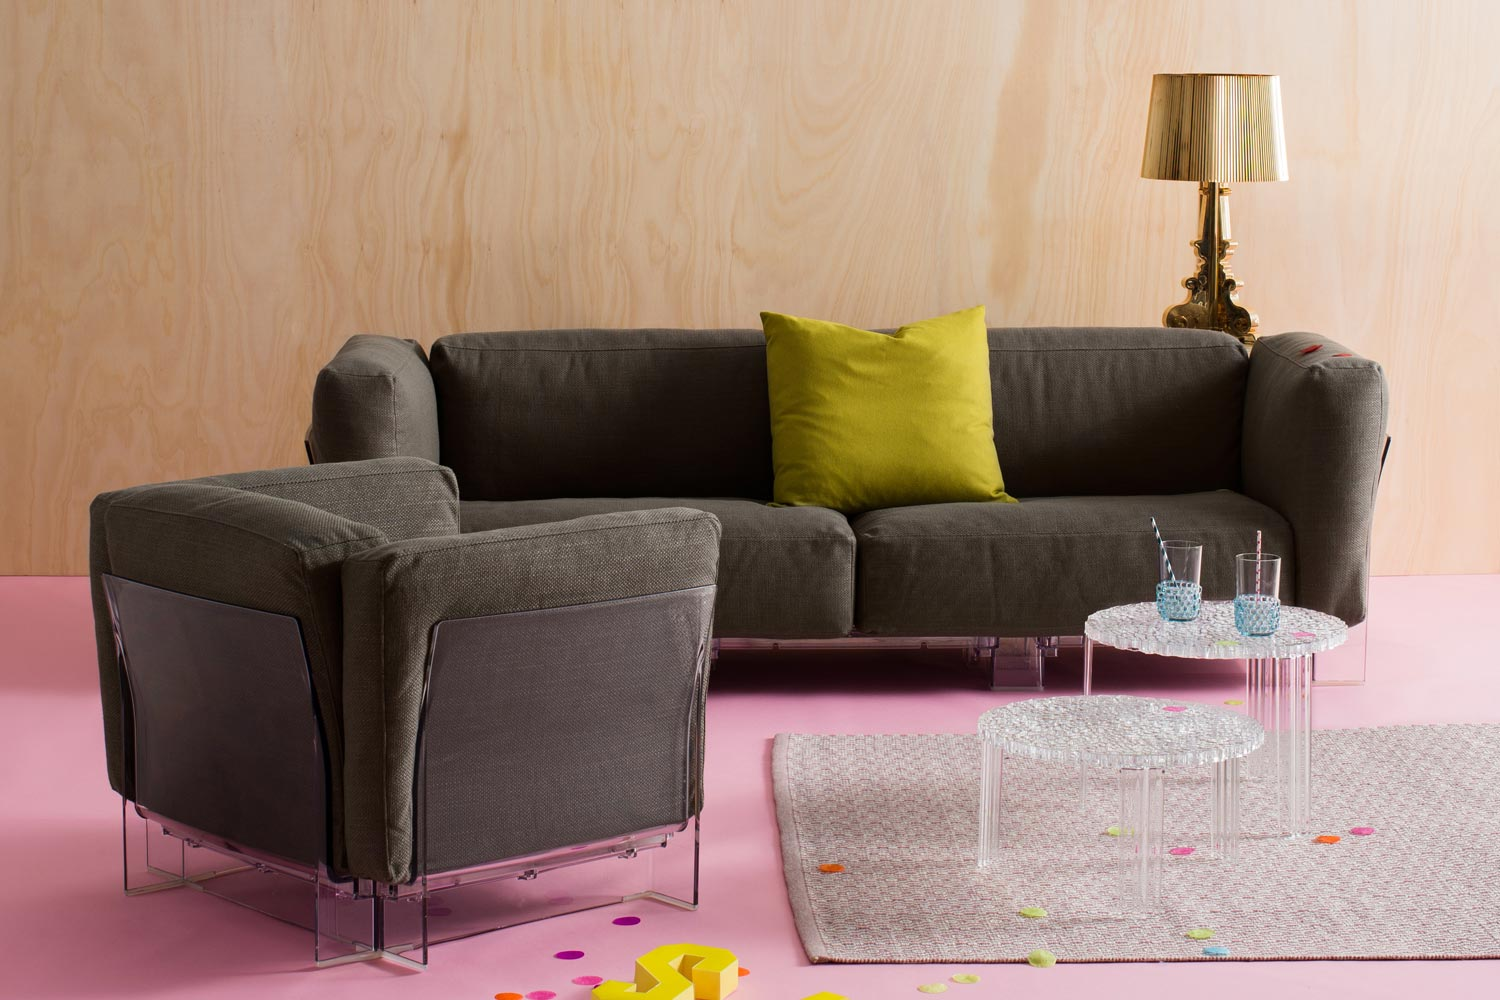 Home Design Ideas from iSaloni 2016: Kartell